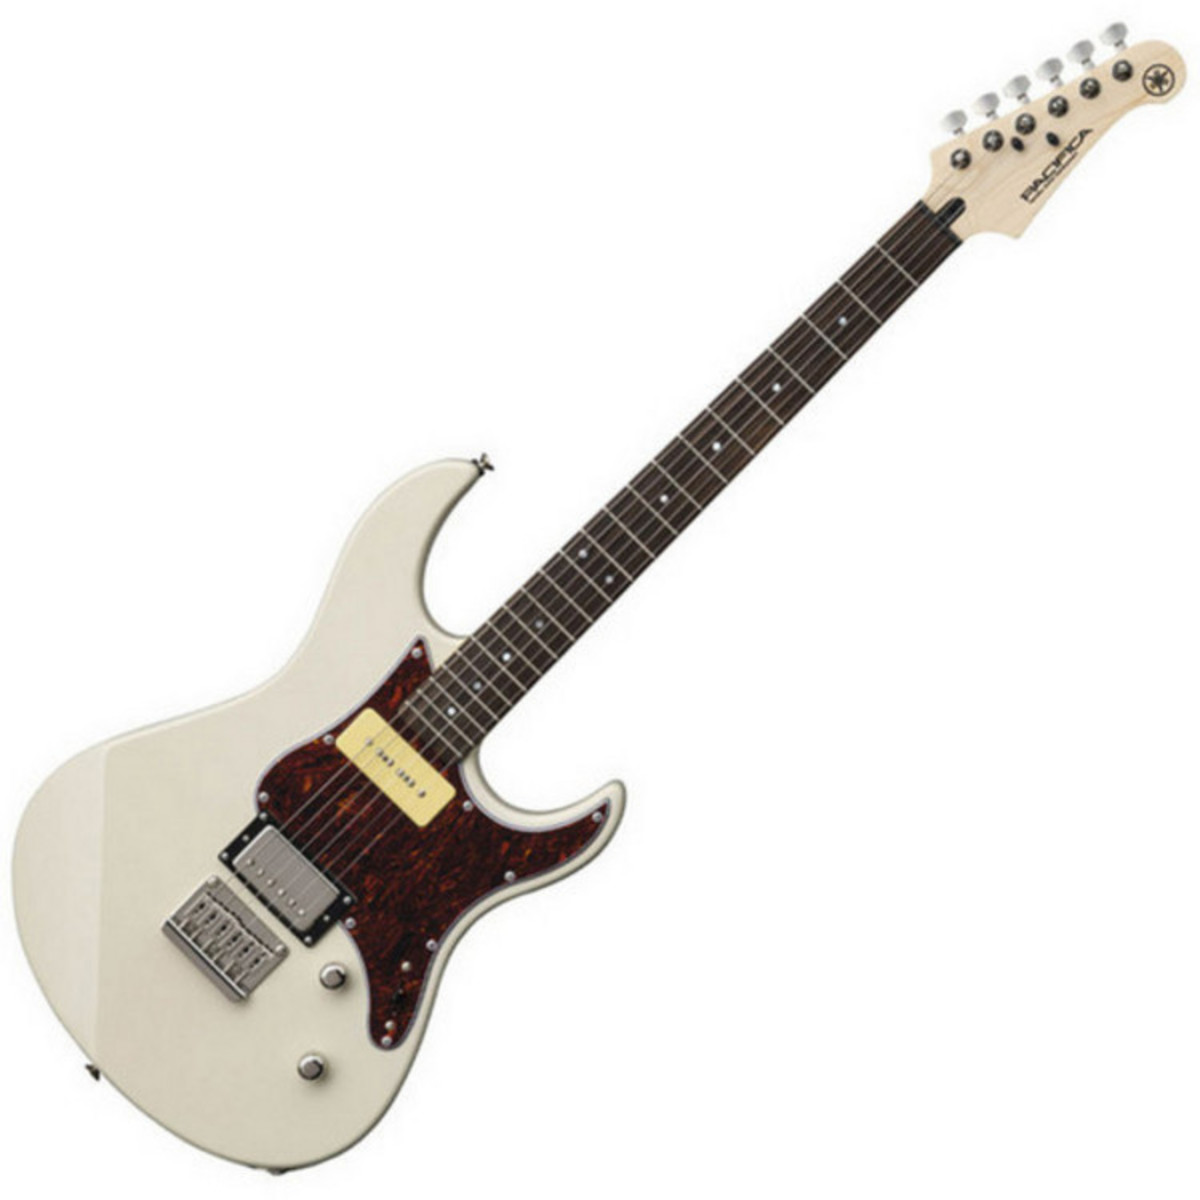 yamaha pacifica 311h electric guitar white with subzero 10w amp pack at gear4music. Black Bedroom Furniture Sets. Home Design Ideas